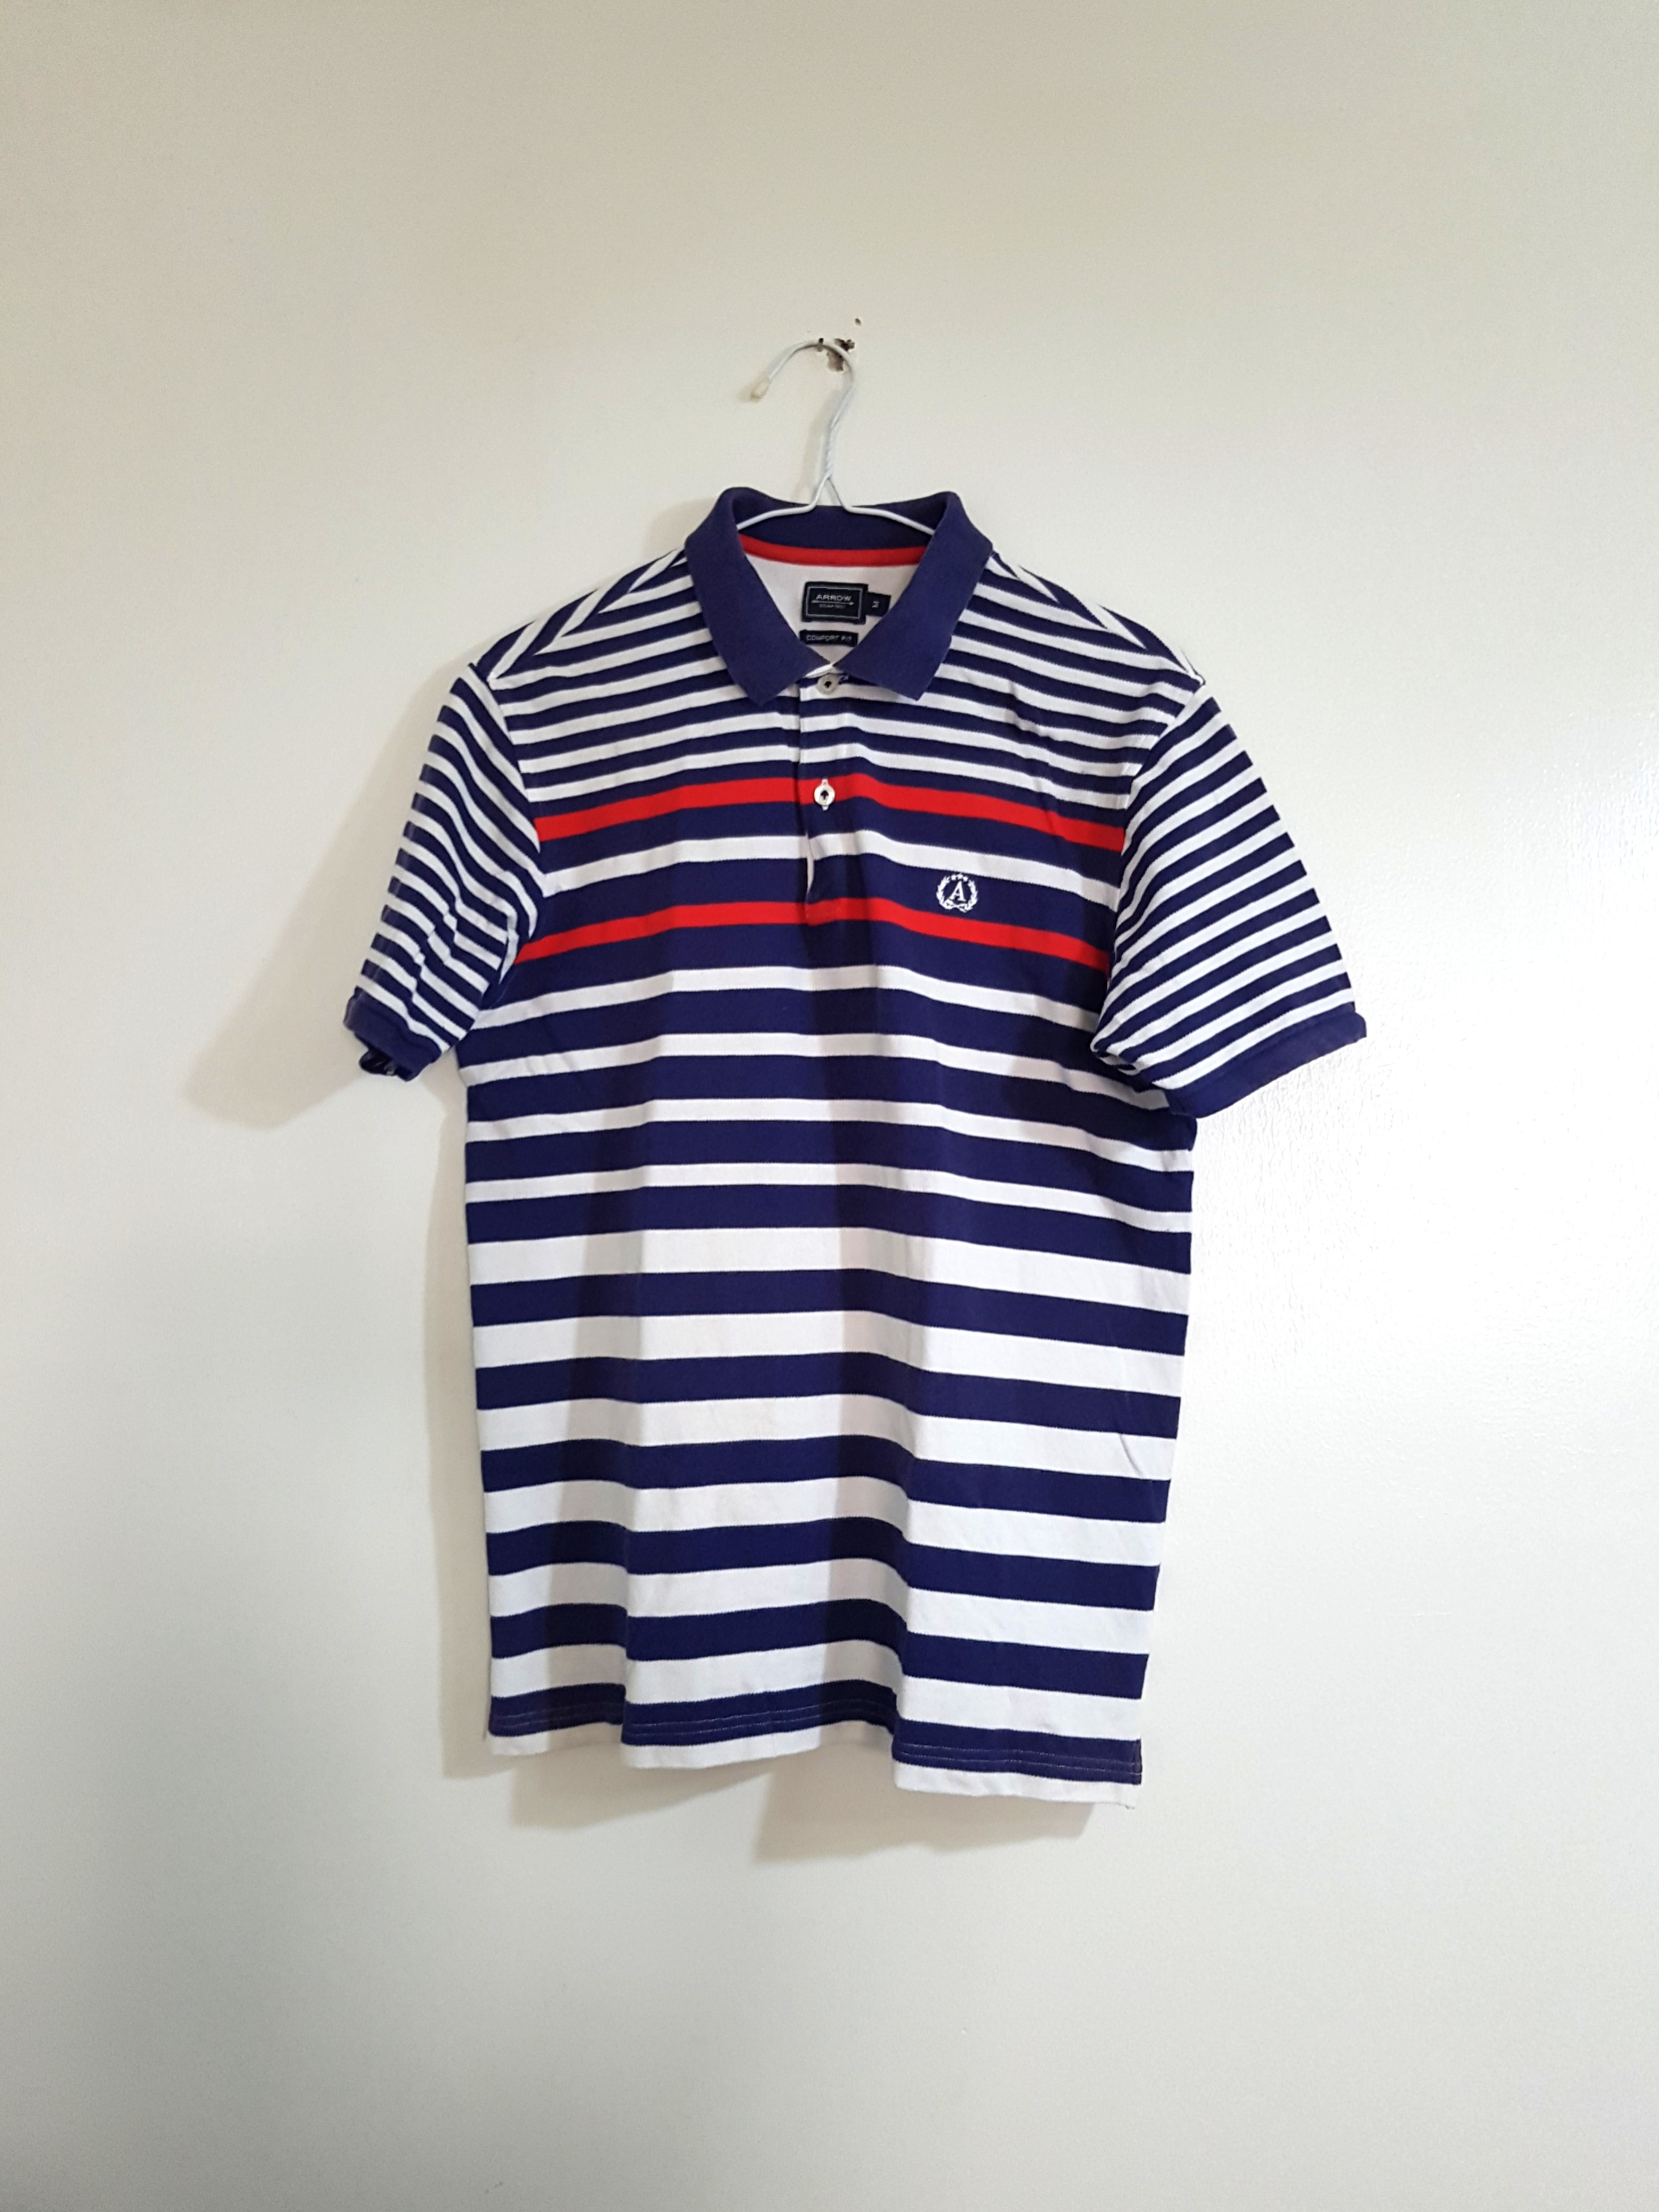 Arrow Polo Shirt Mens Fashion Clothes Tops On Carousell